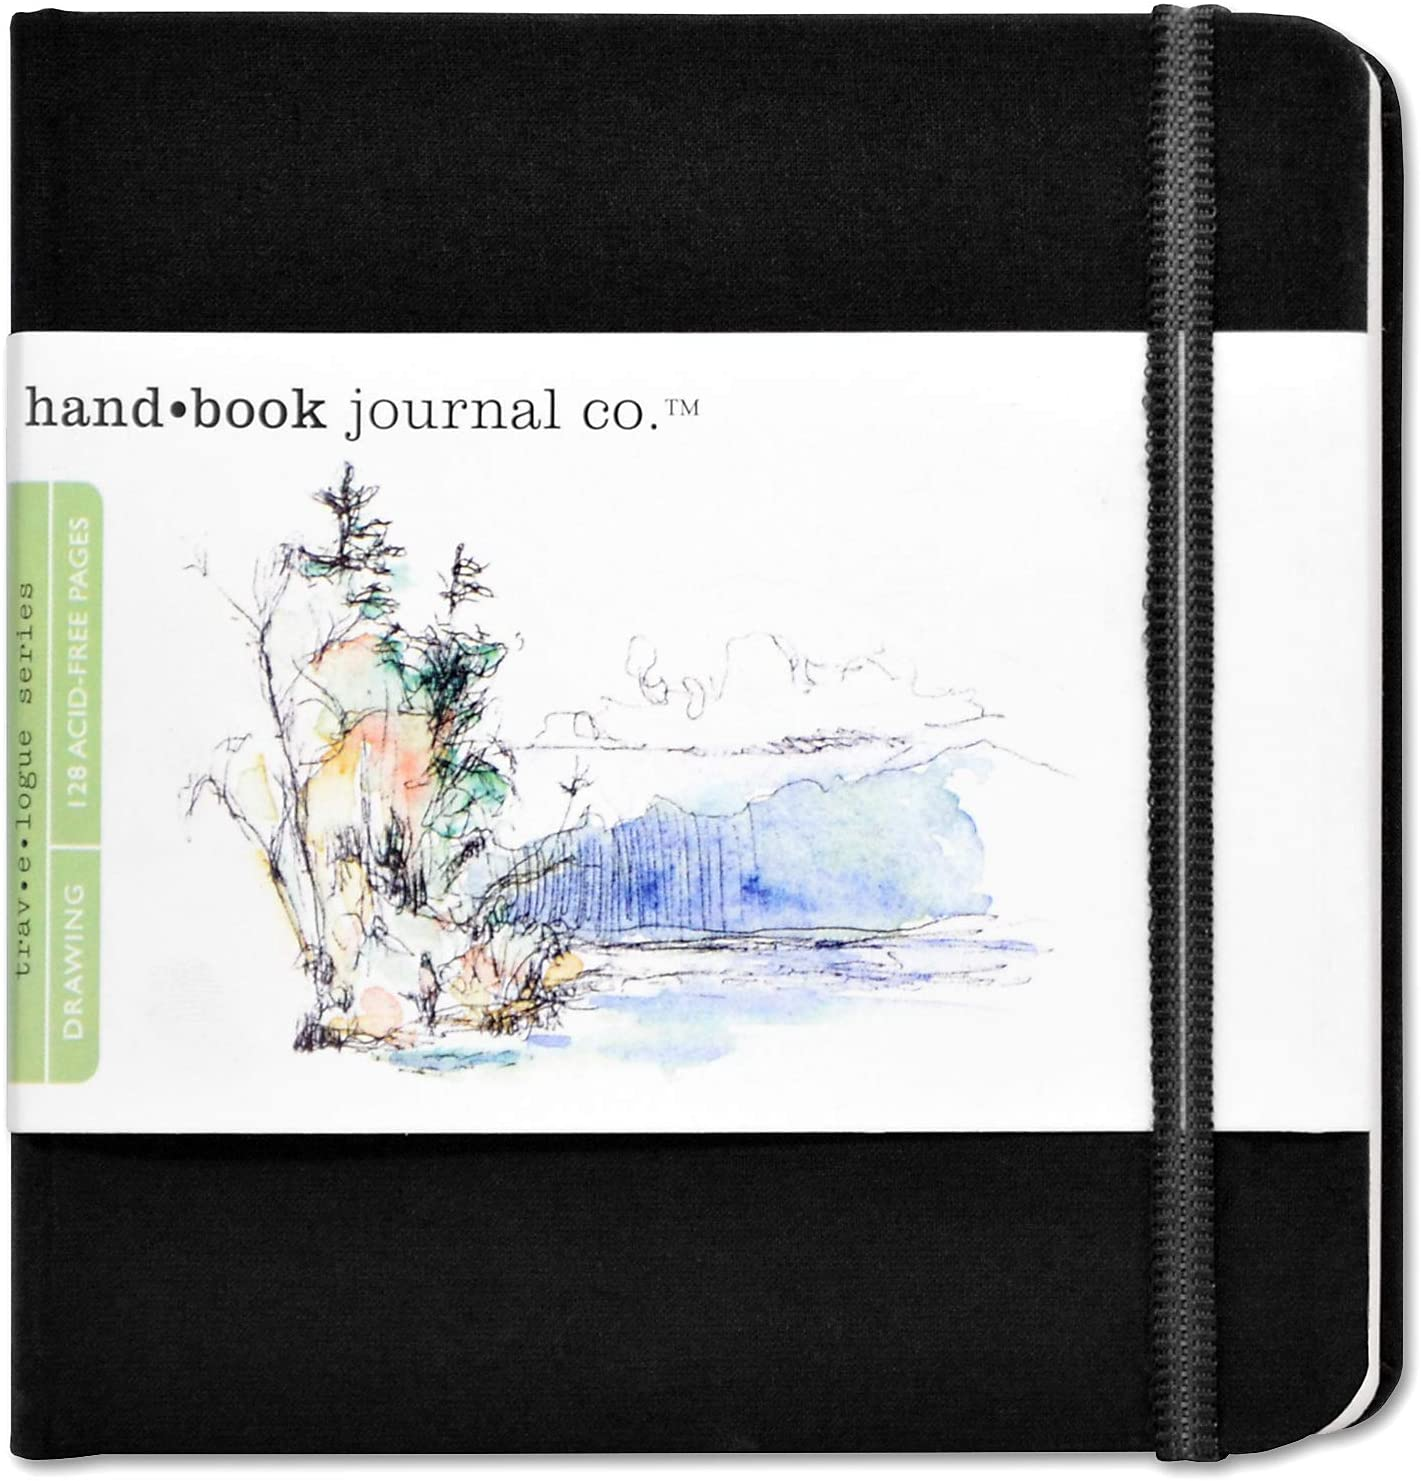 Travelogue Drawing Book, Square 5-1/2 x 5-1/2, Ivory Black Artist Journal: Arts, Crafts & Sewing